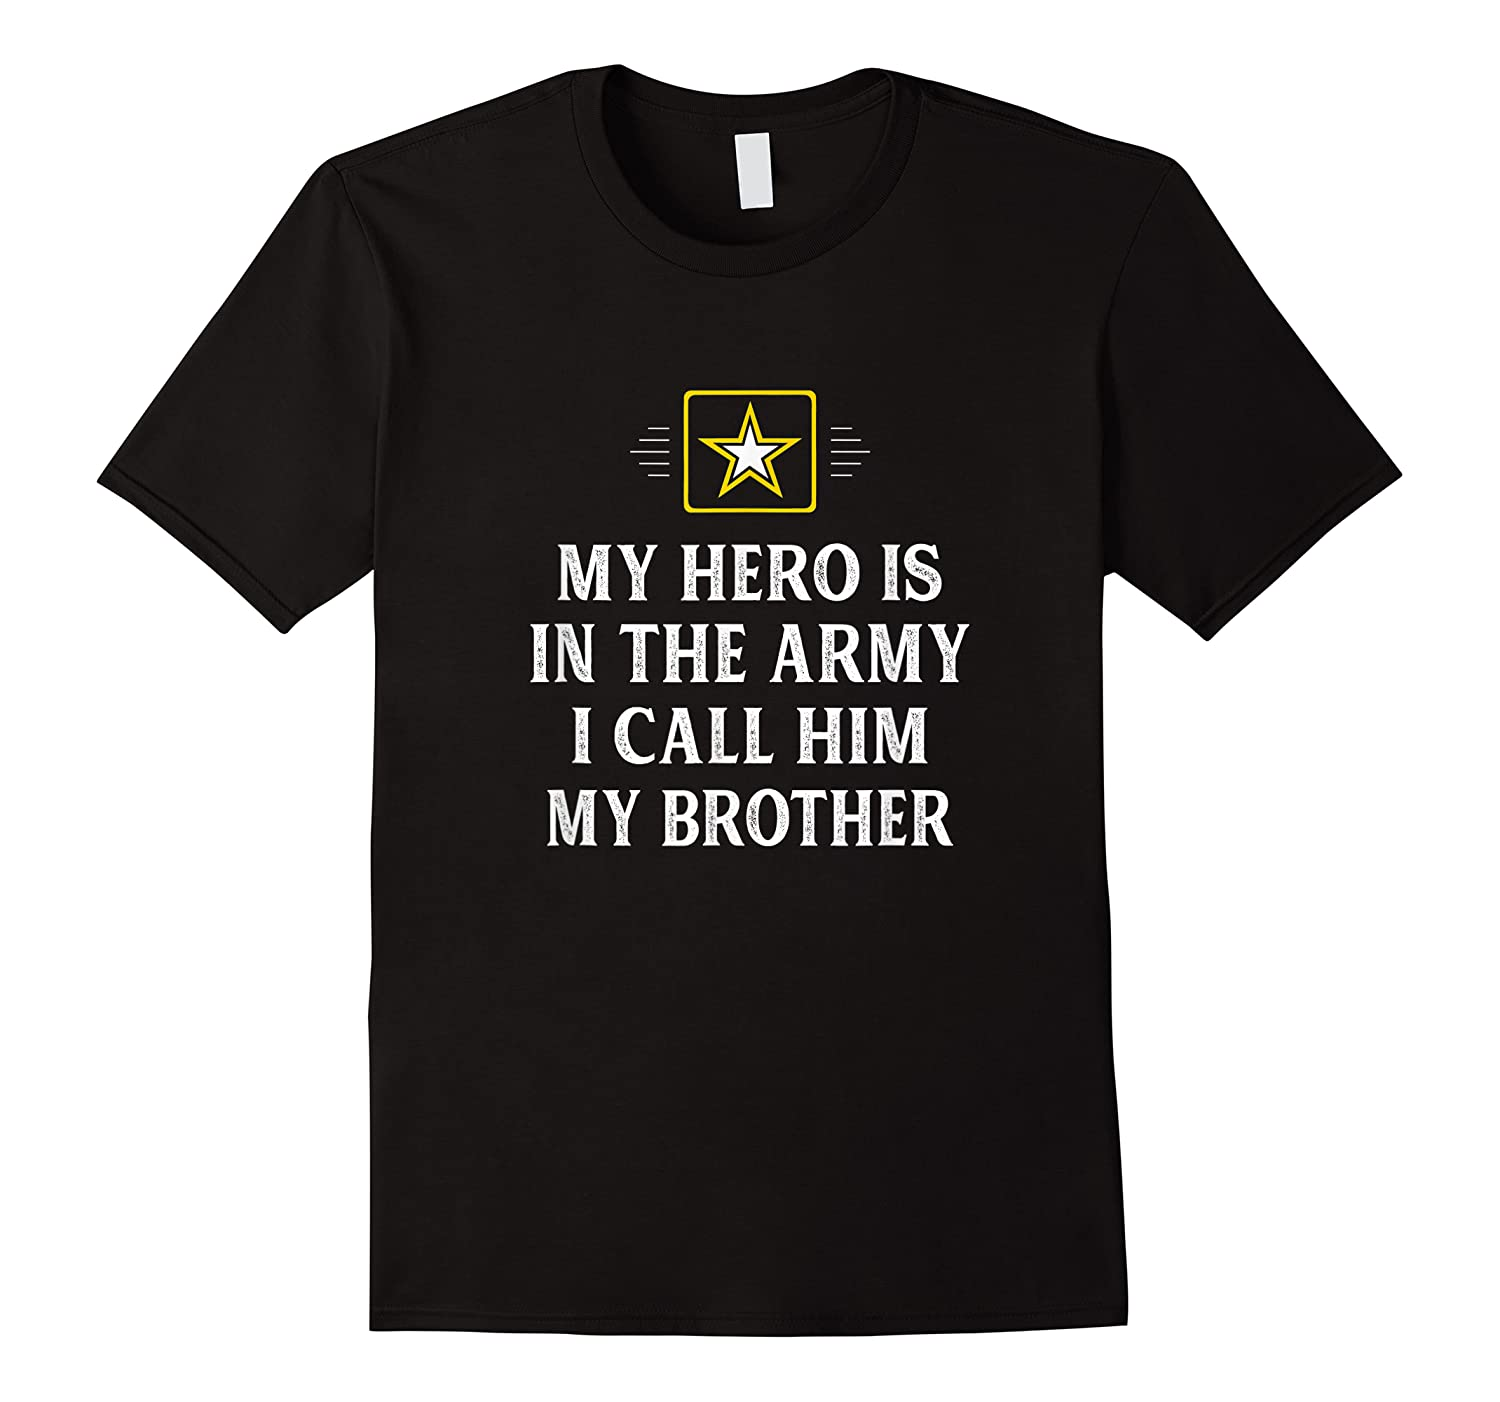 My Hero Is In The Army - I Call Him My Brother - Vintage - T-shirt